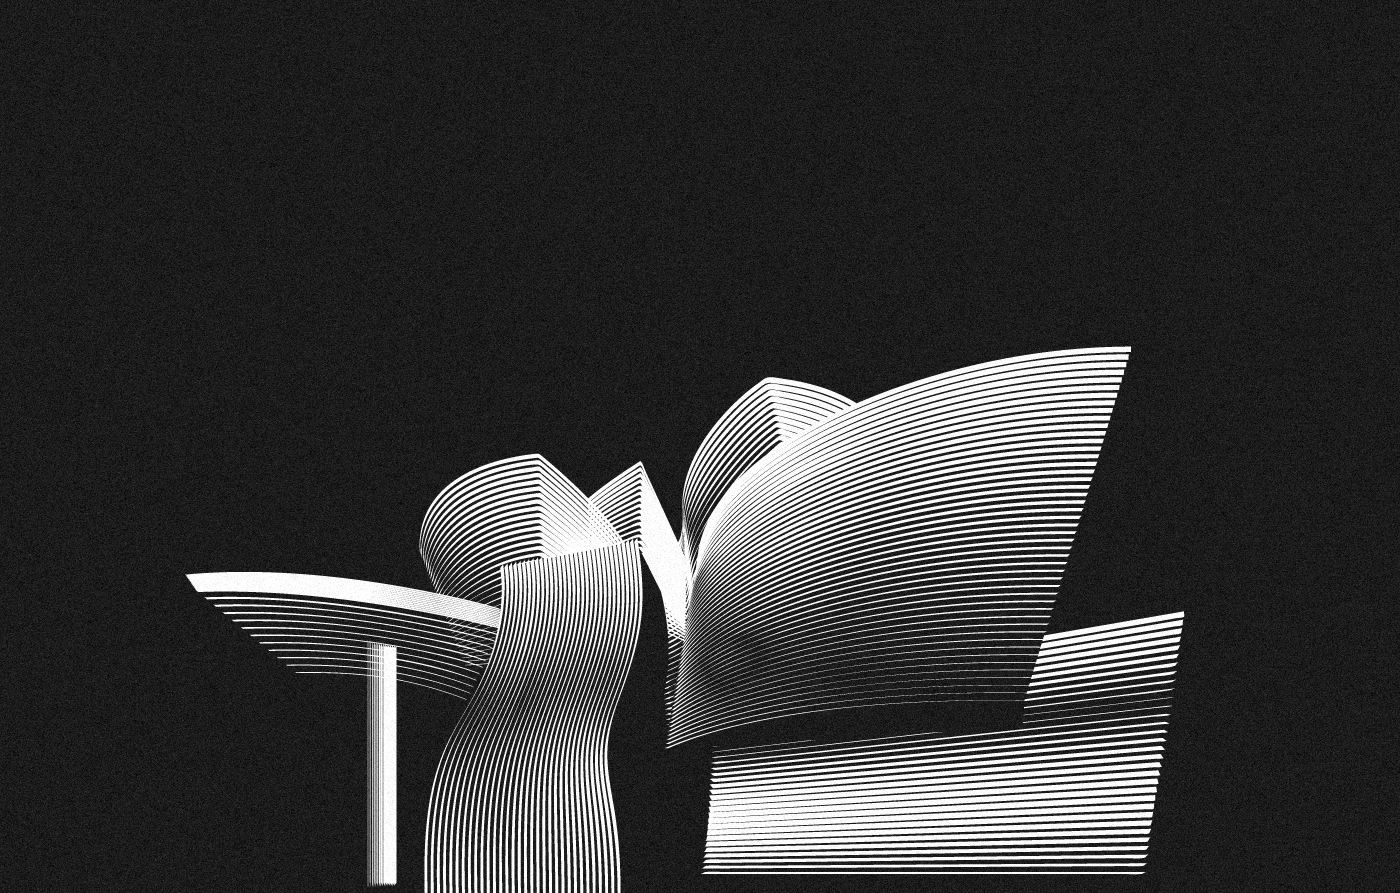 famous architectural buildings black and white. Spectacular Black \u0026 White Illustrations Of Iconic Architectural Landmarks By Designer Andrea Minini Famous Buildings And